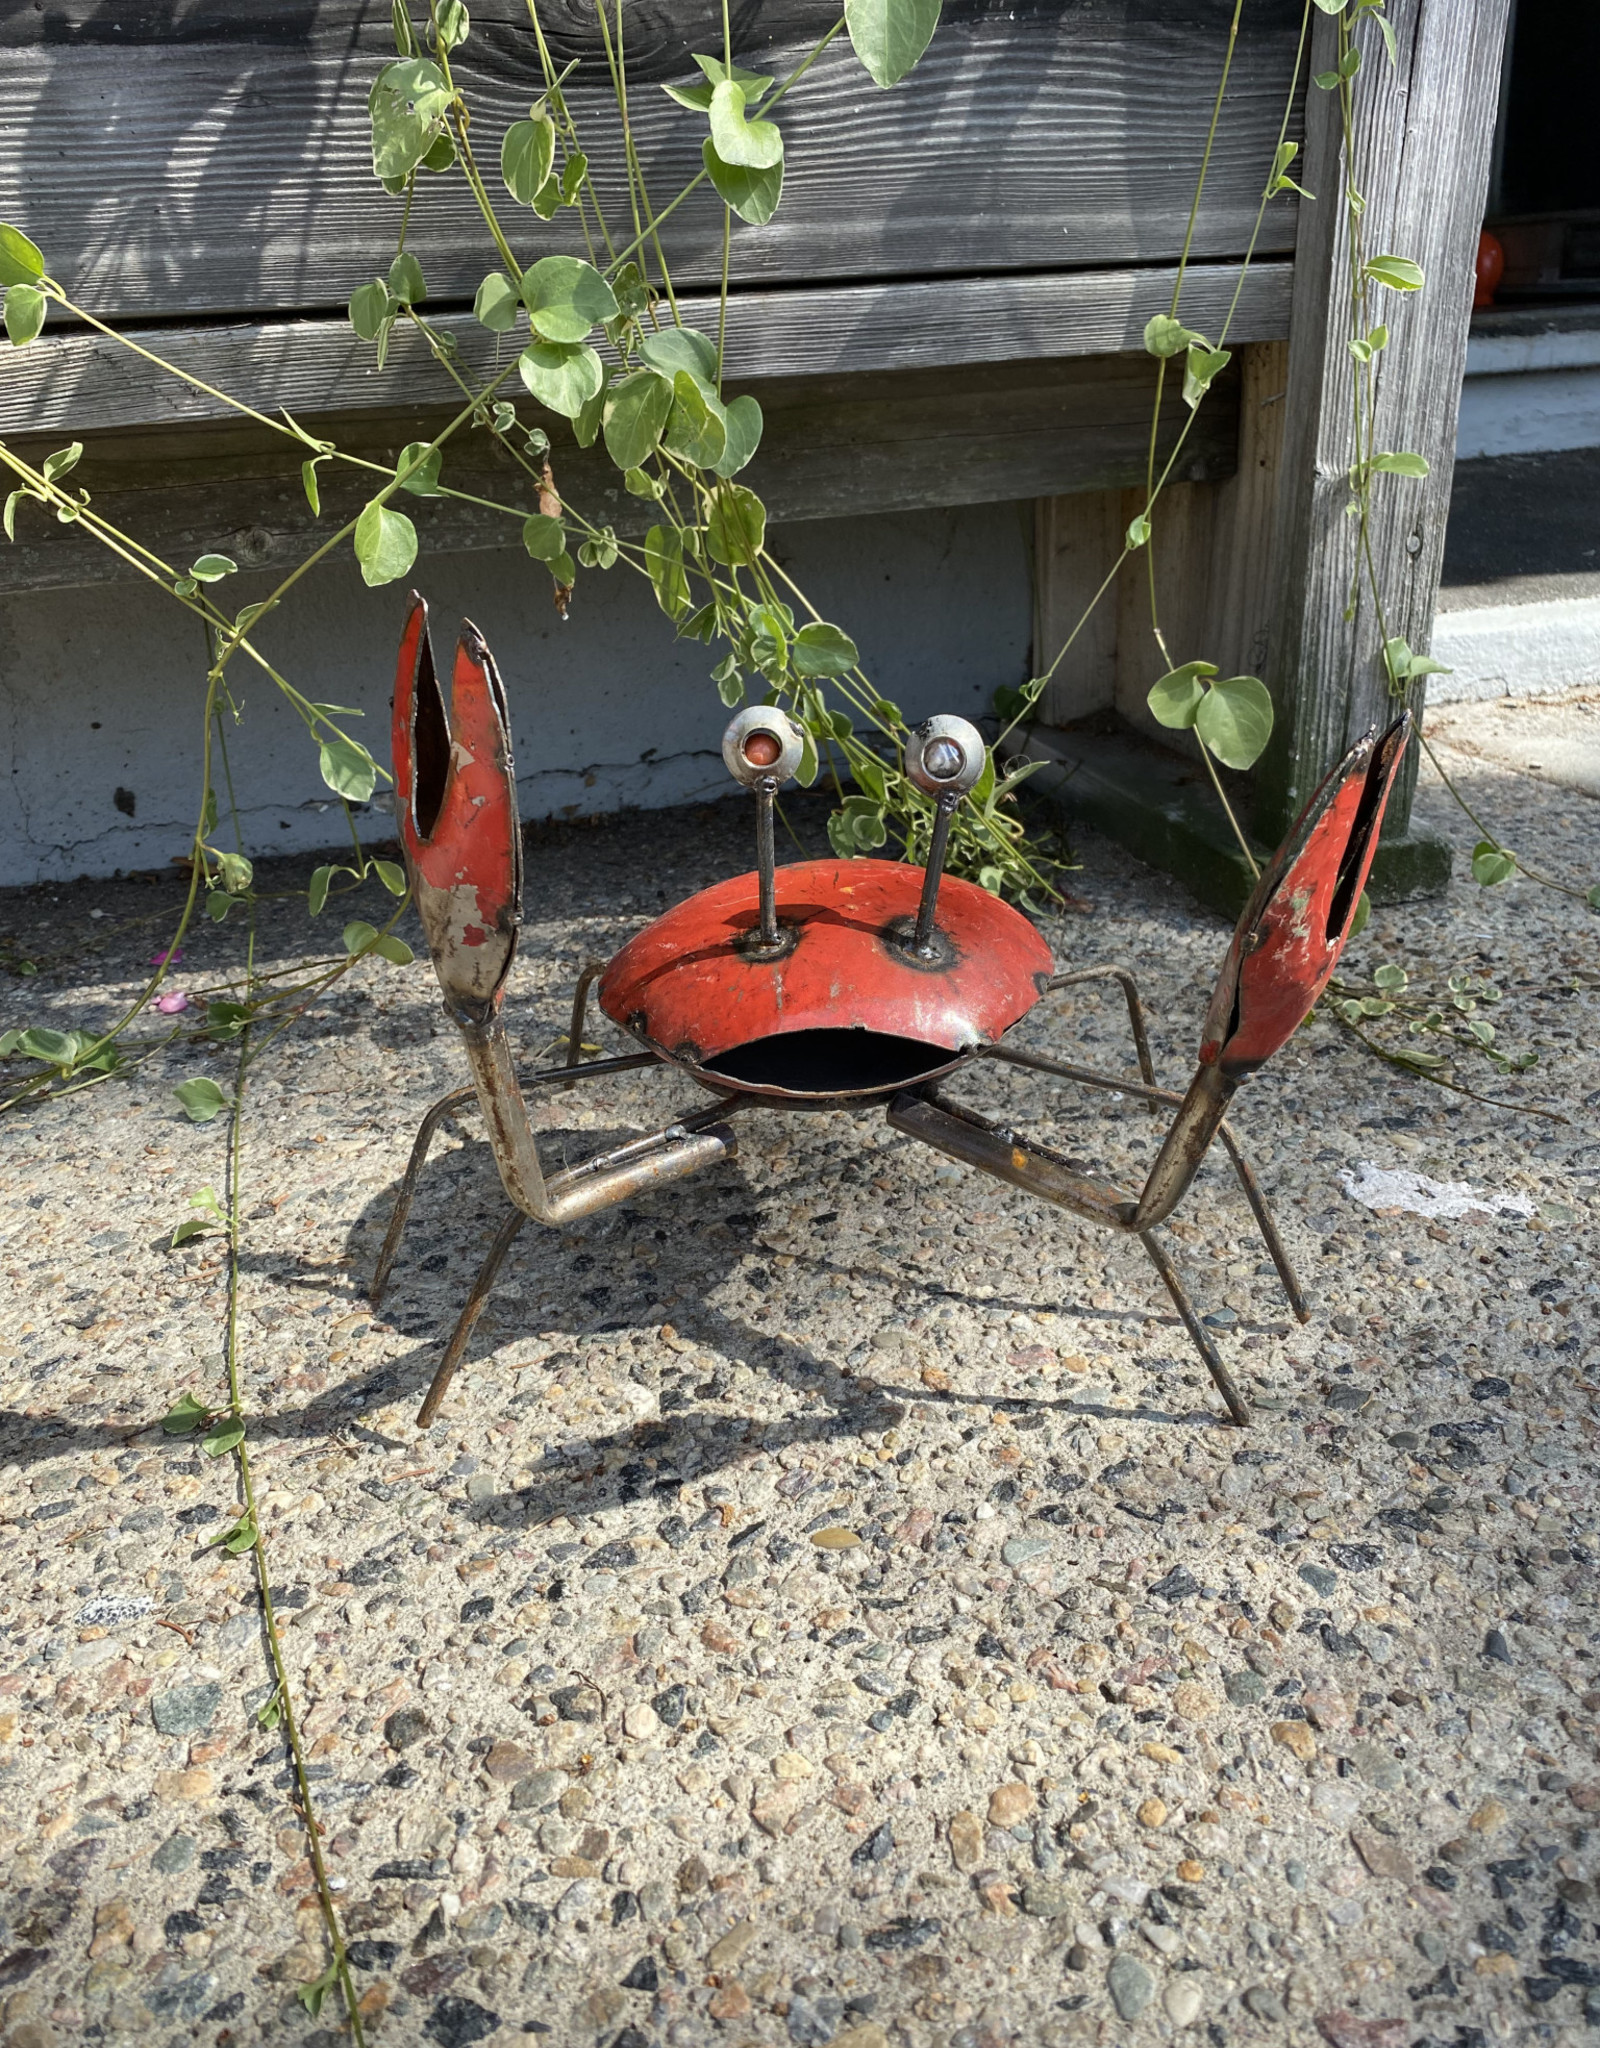 Standing Crab - Claws Up (CURBSIDE PICKUP ONLY)LY